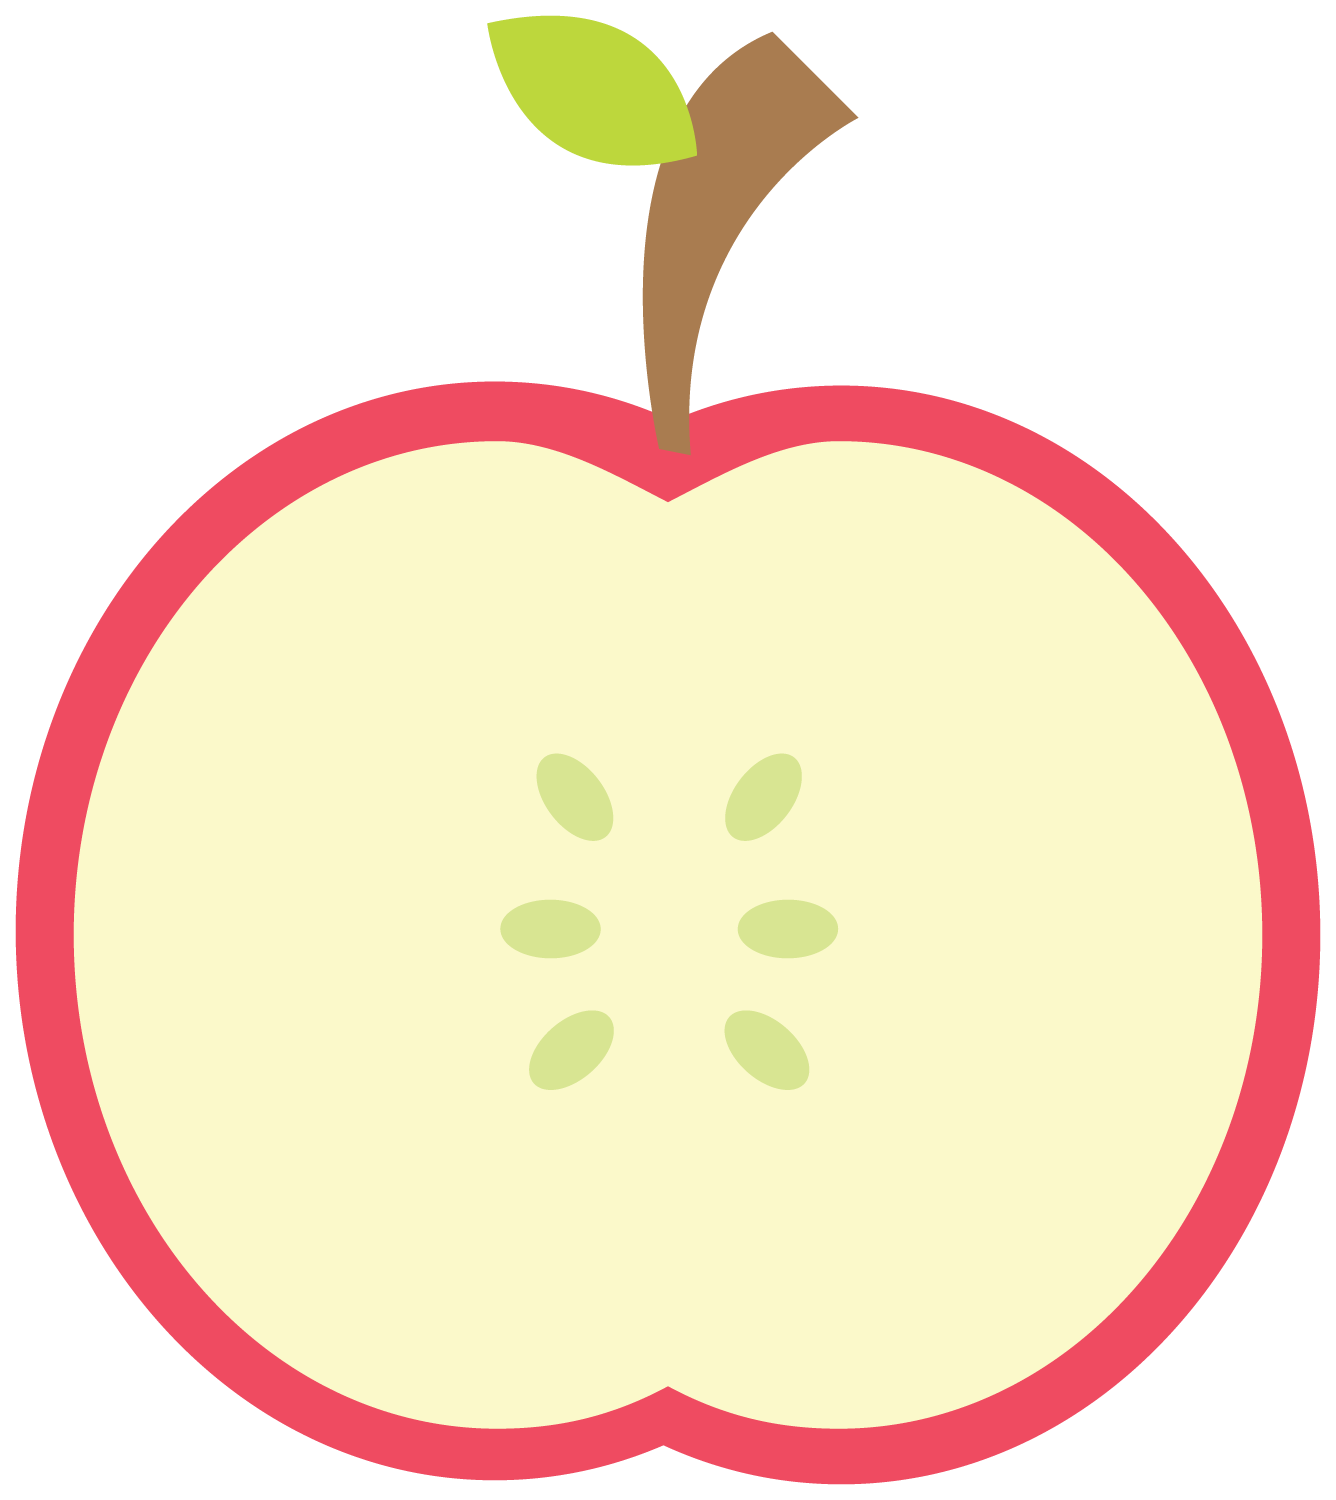 A+ apple clipart clip freeuse download Pin by Paula Bloom on Craft Ideas | Pinterest | Clip art and Crafts clip freeuse download